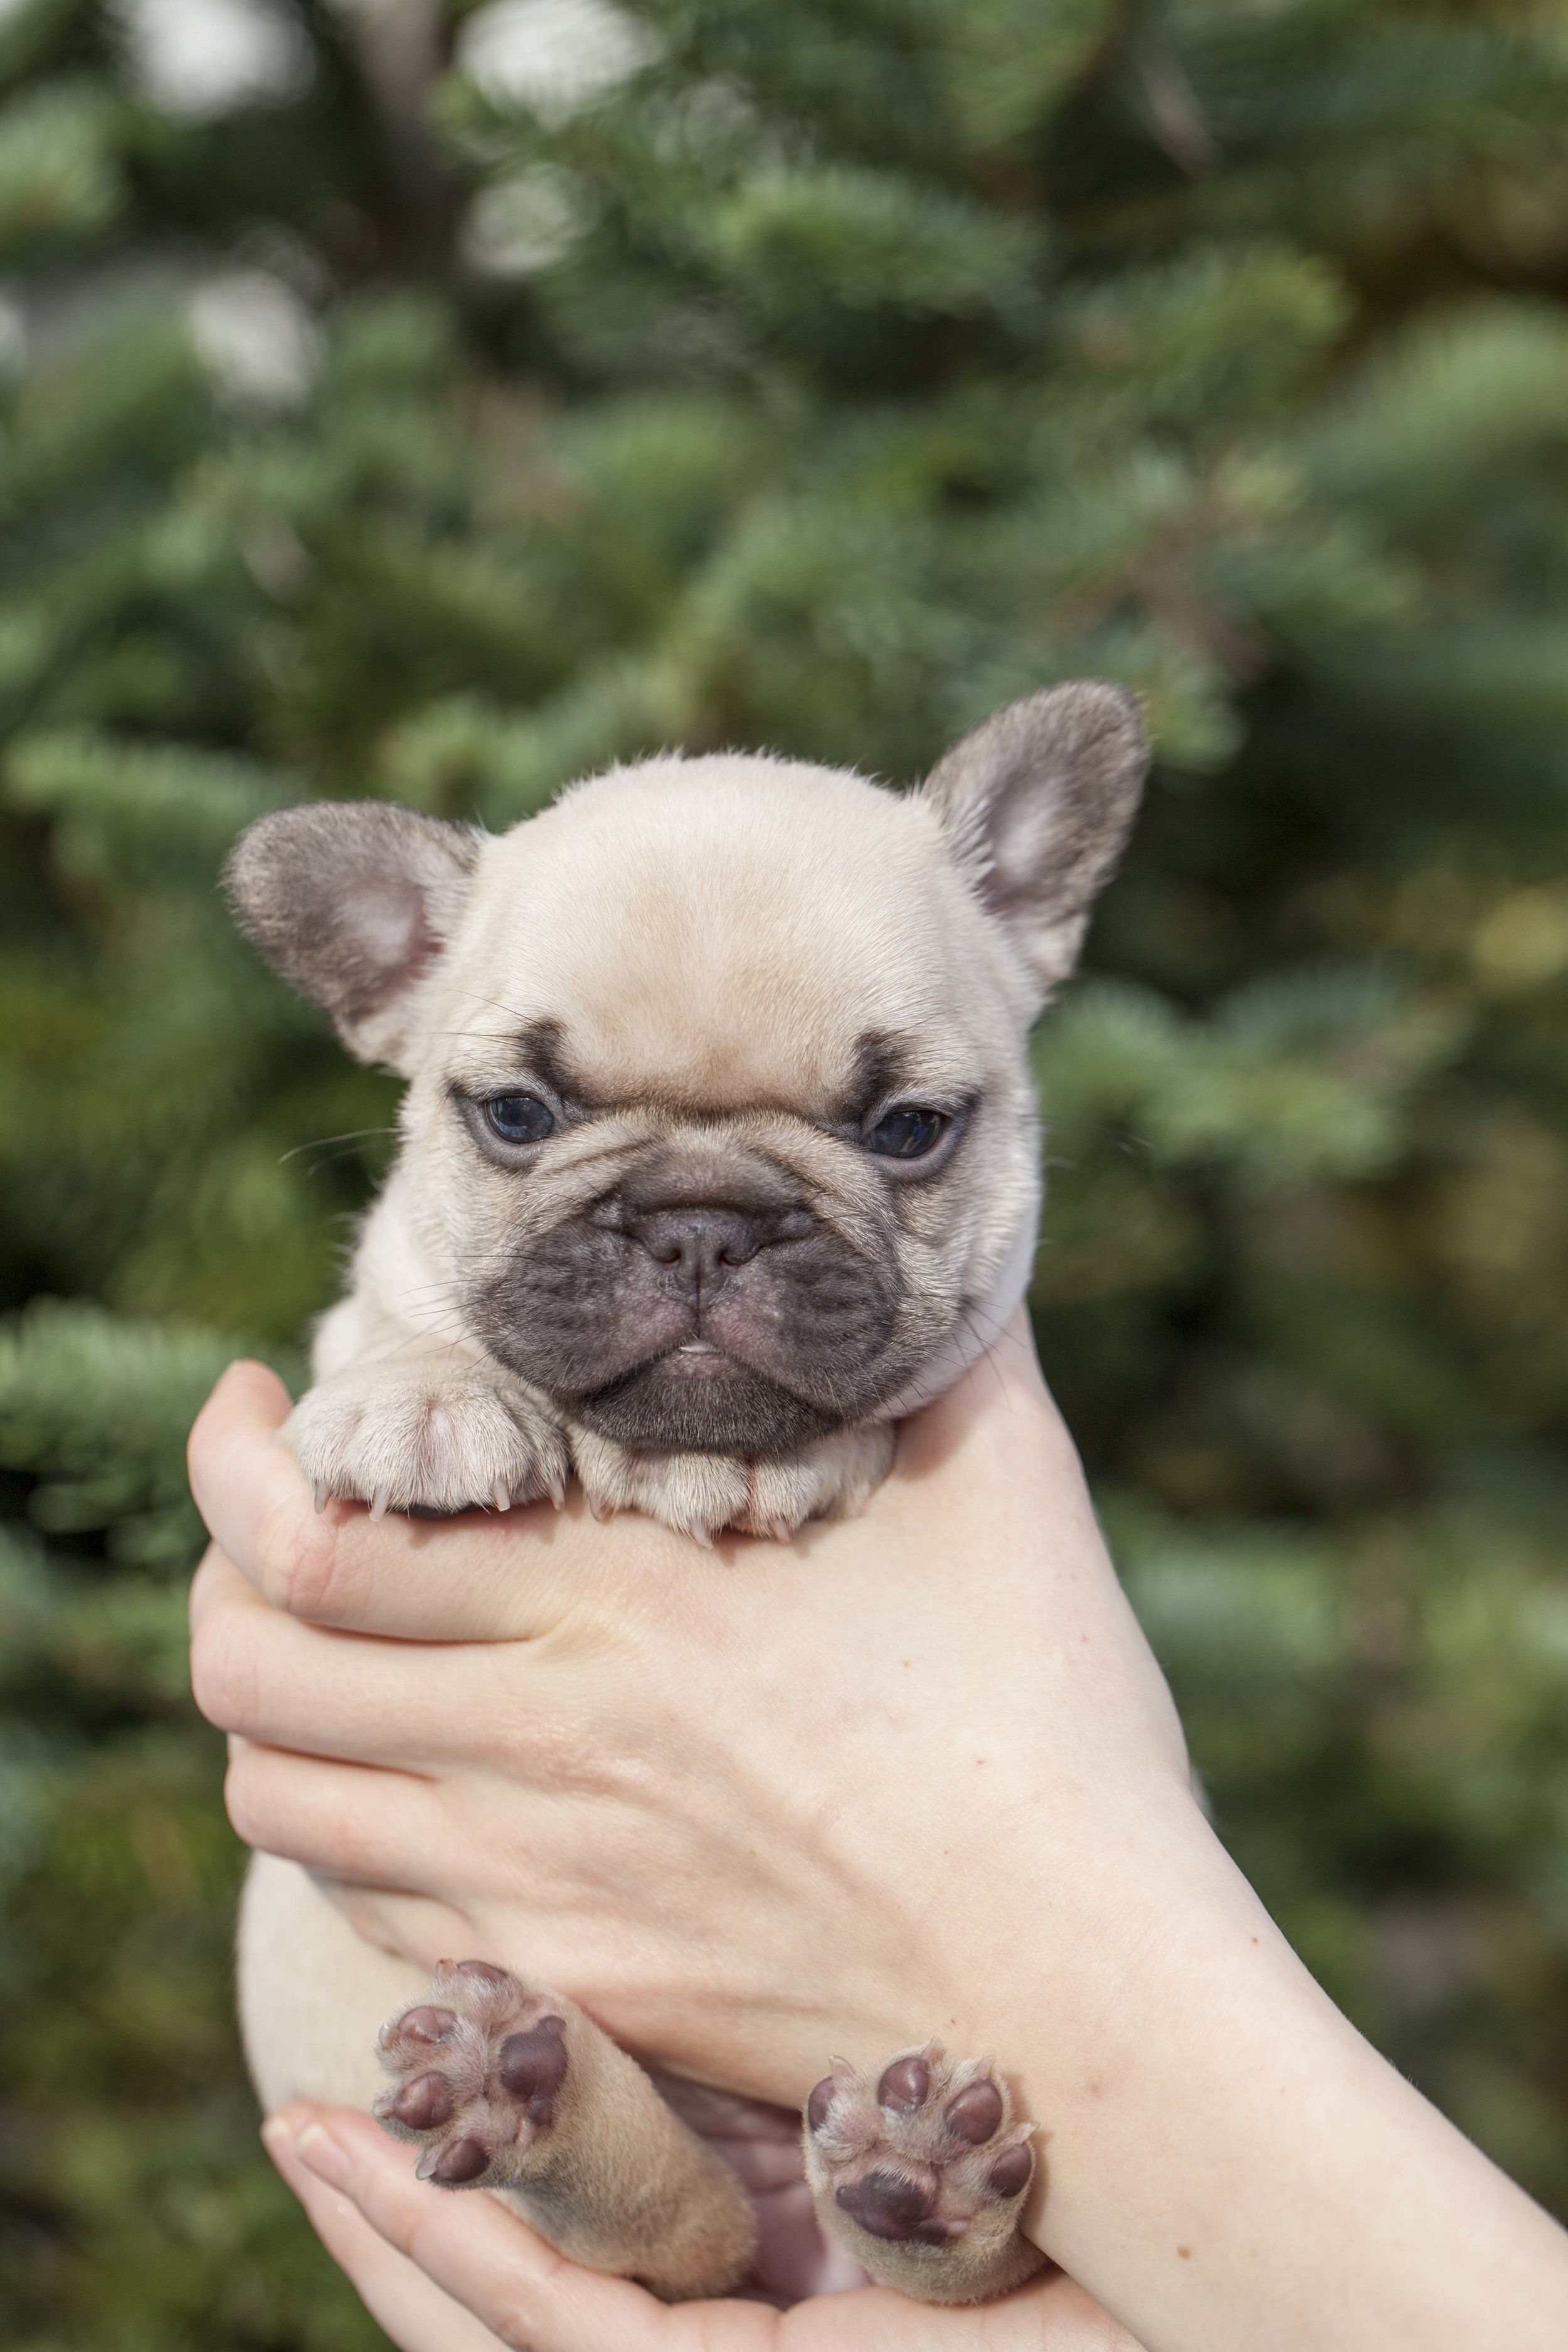 French Bulldog Puppies For Sale In Washington State Puppy Application Page Northwest Frenchies Fawn French Bulldog Bulldog Puppies French Bulldog Puppies